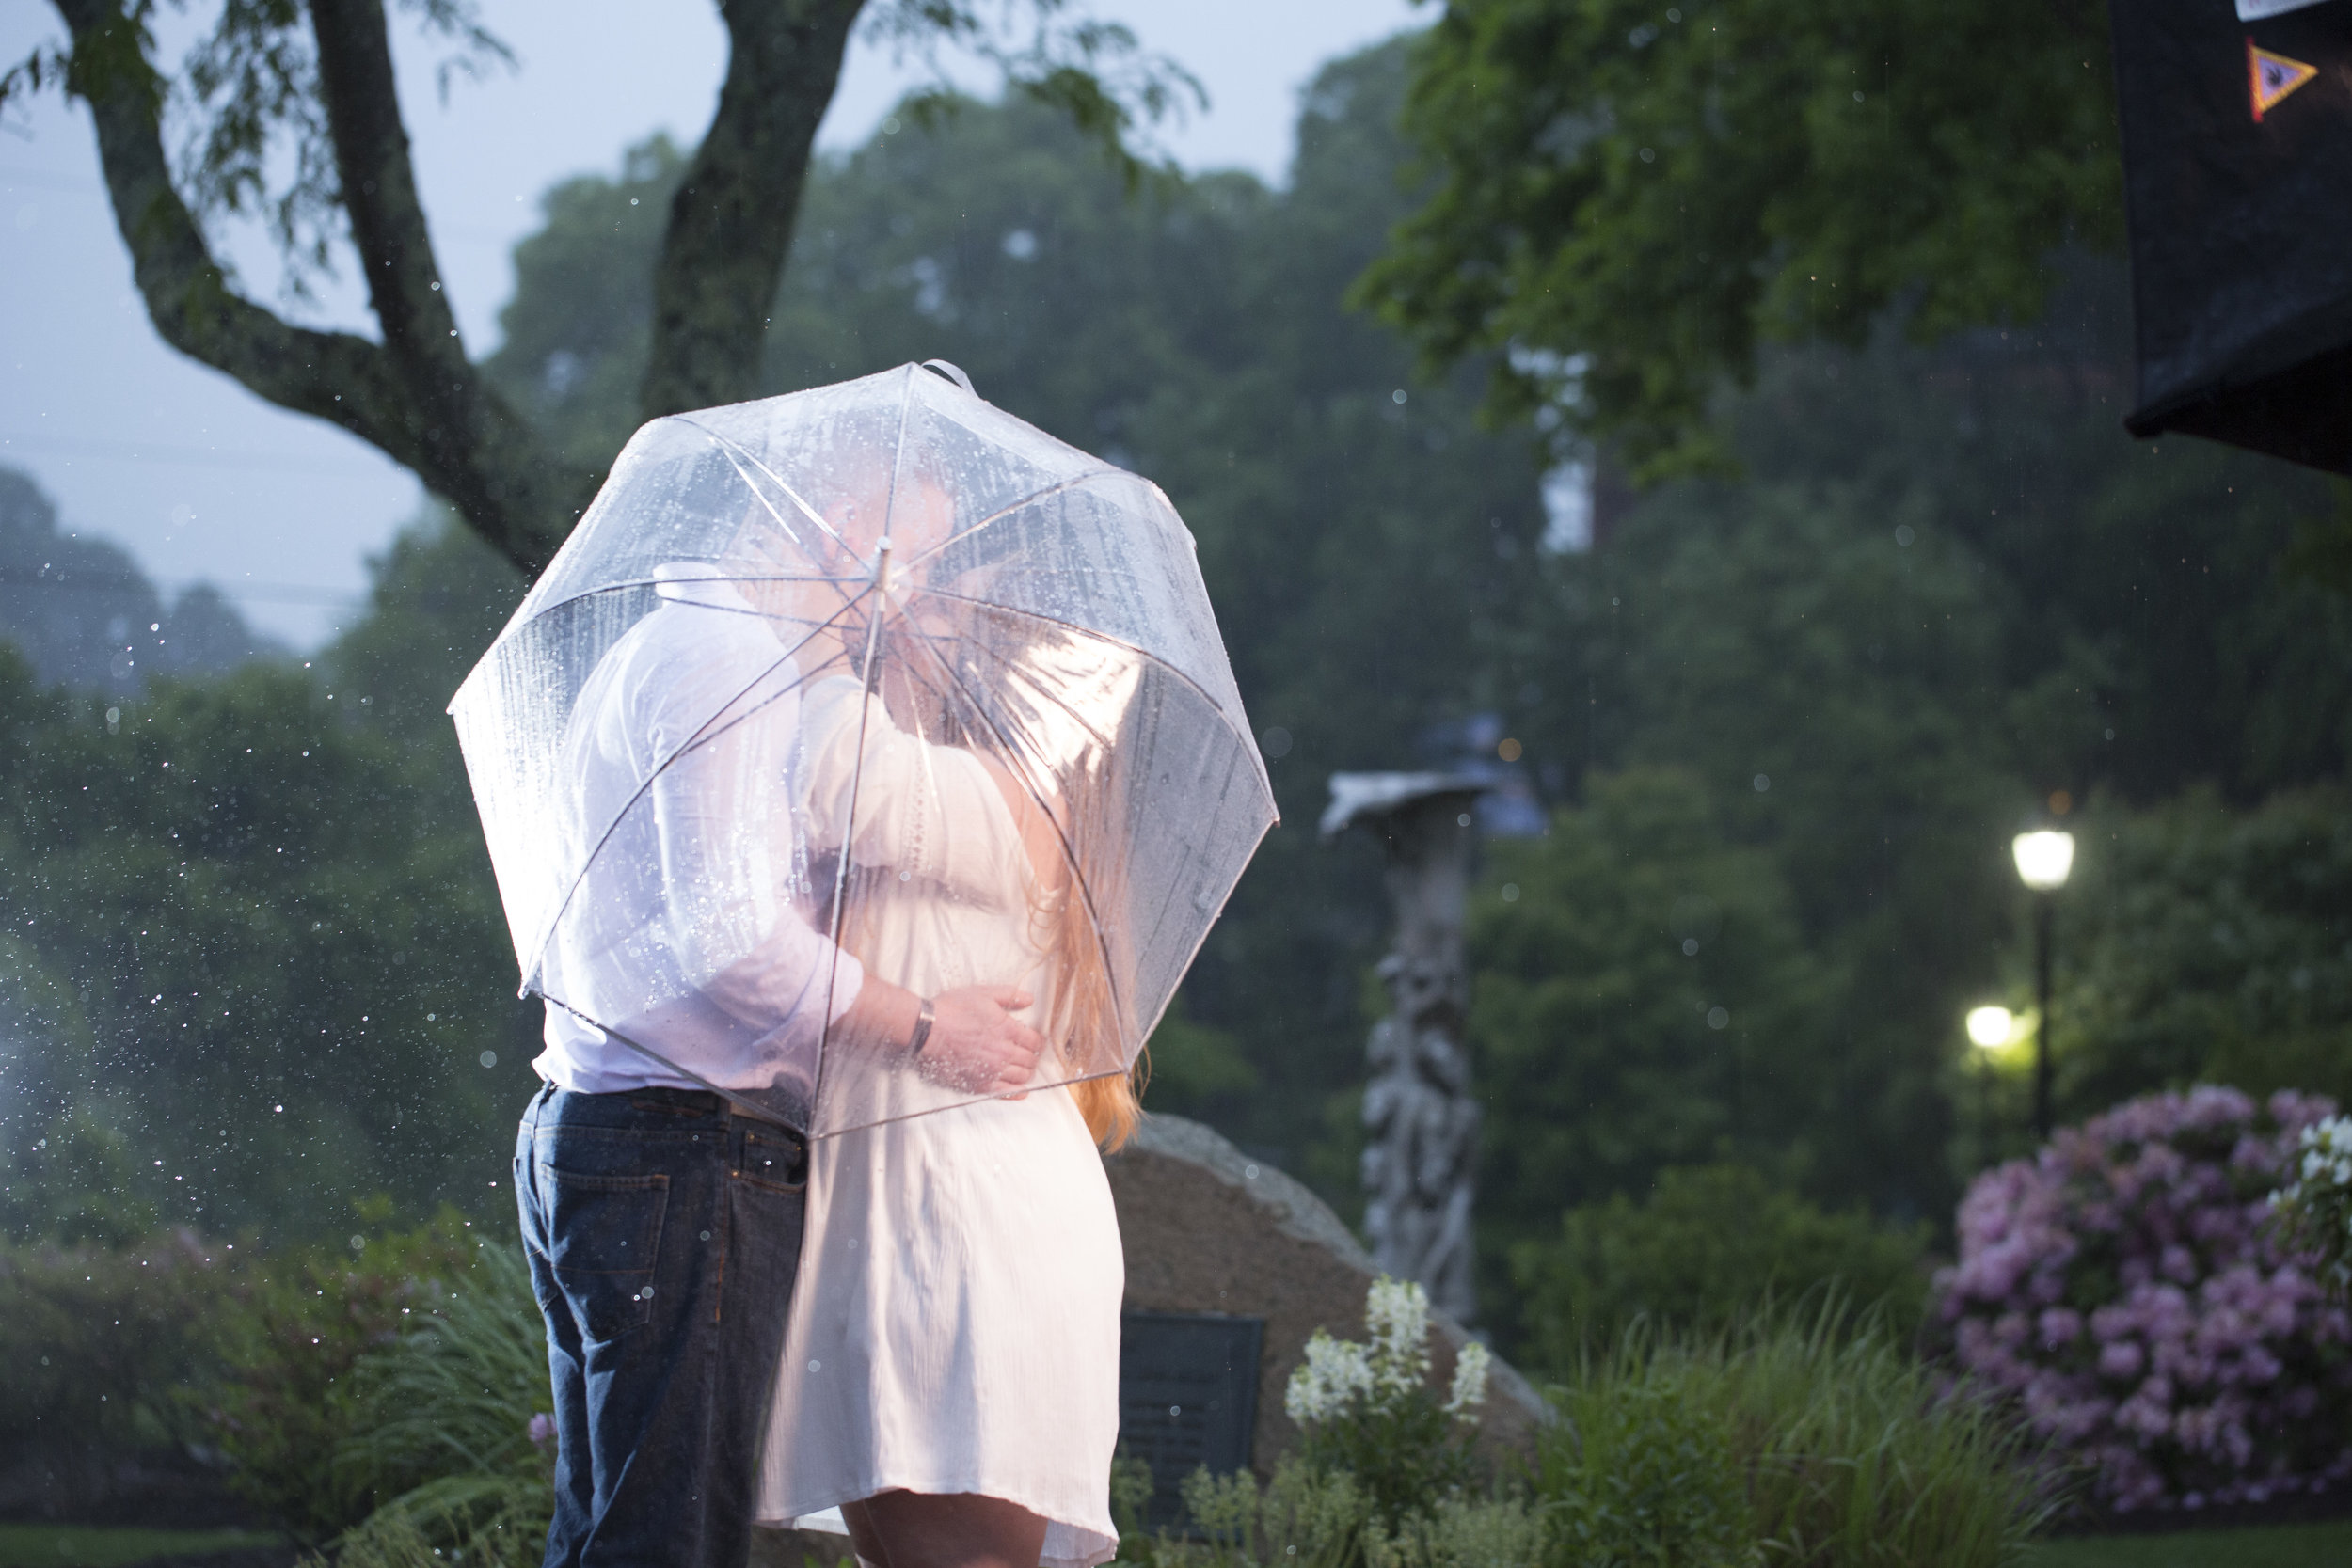 8C2A0164+Giovanni The Photographer Best Boston Engagement Photography Public Gardens - Commons WM100.jpg